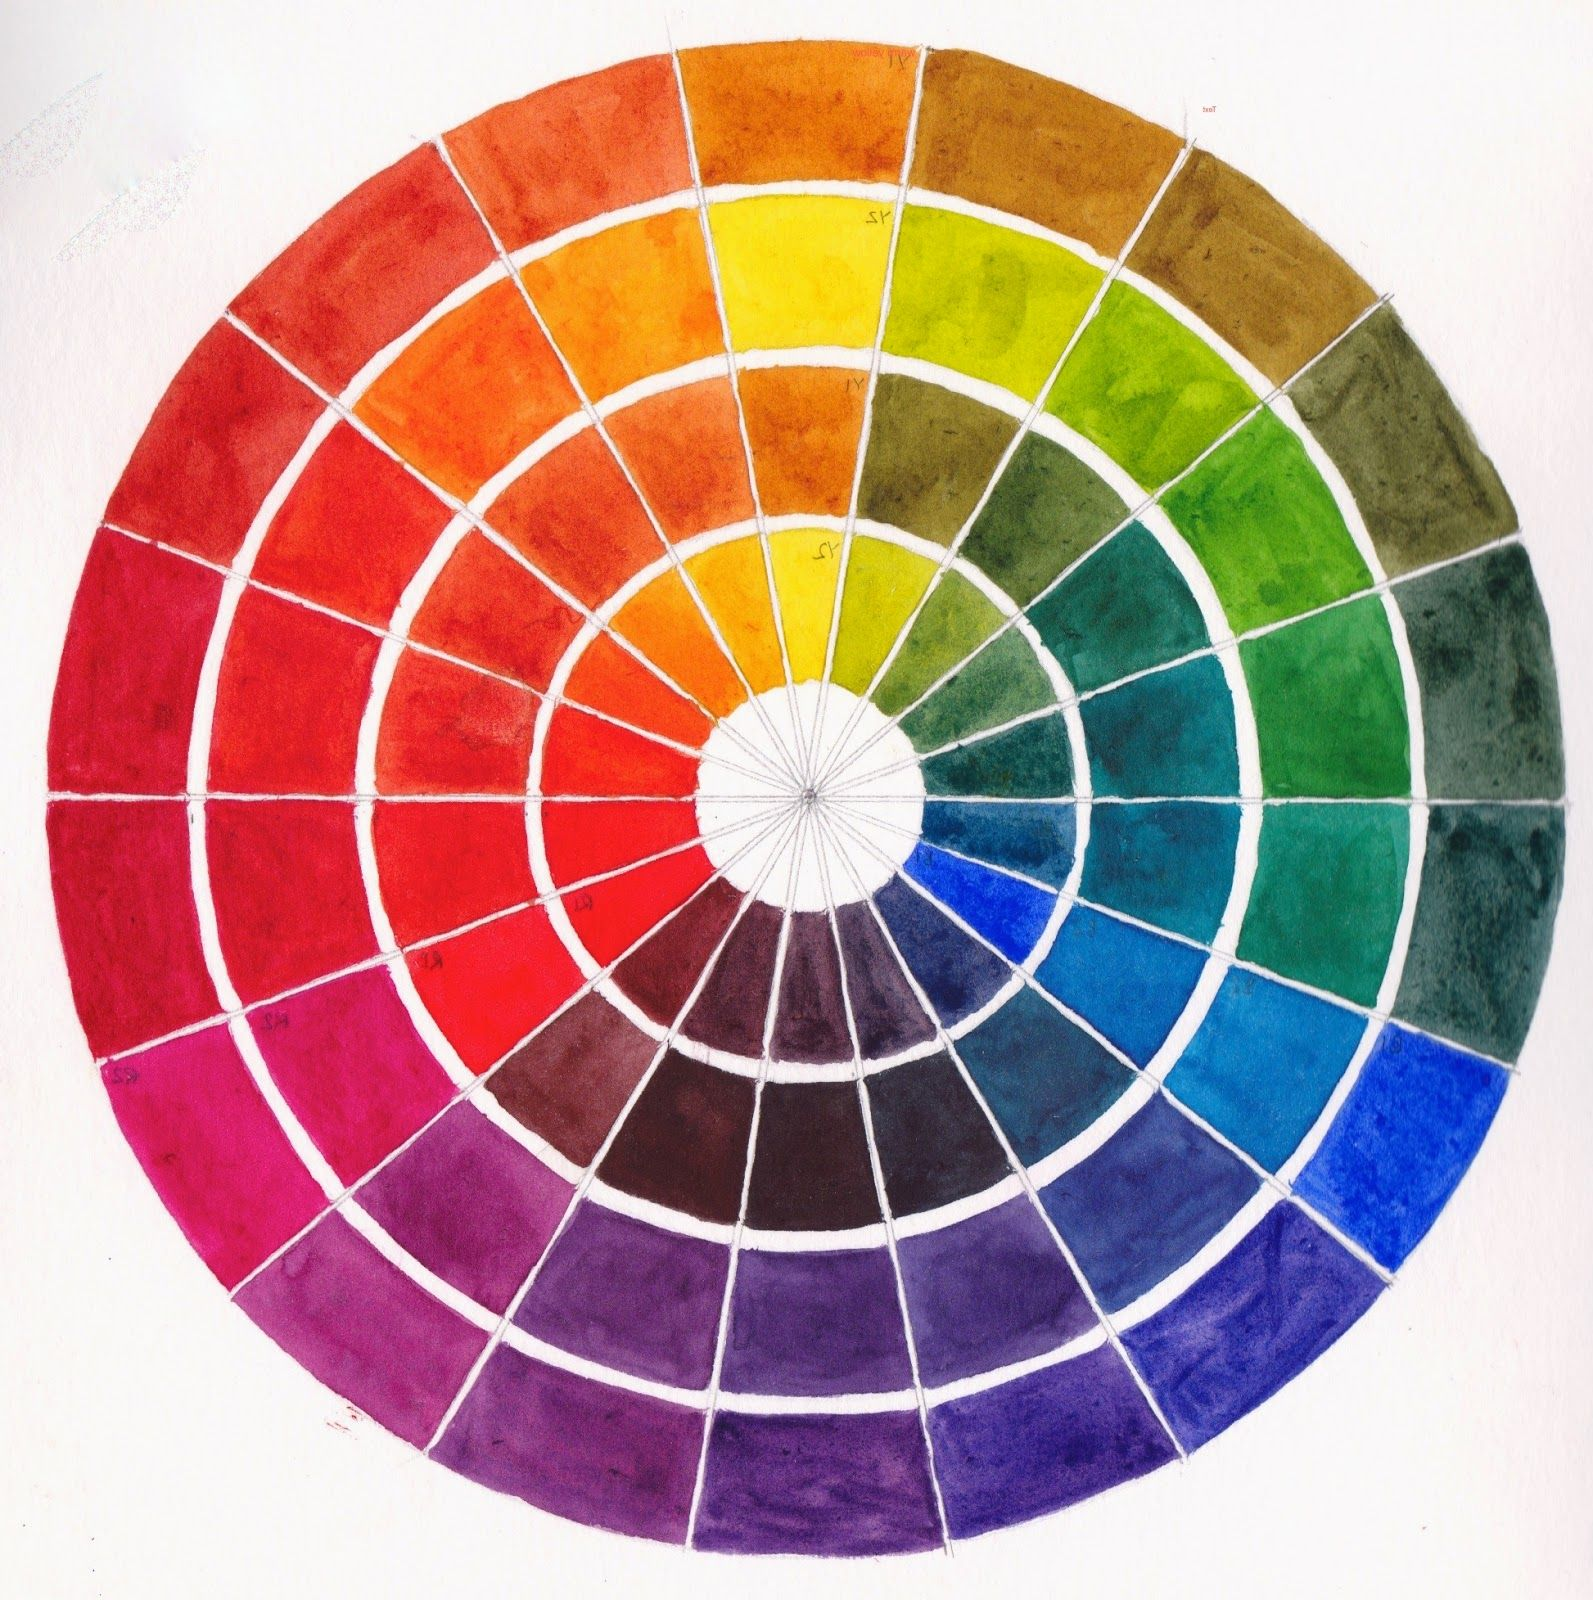 Jane blundell warm and cool primary colour wheel with